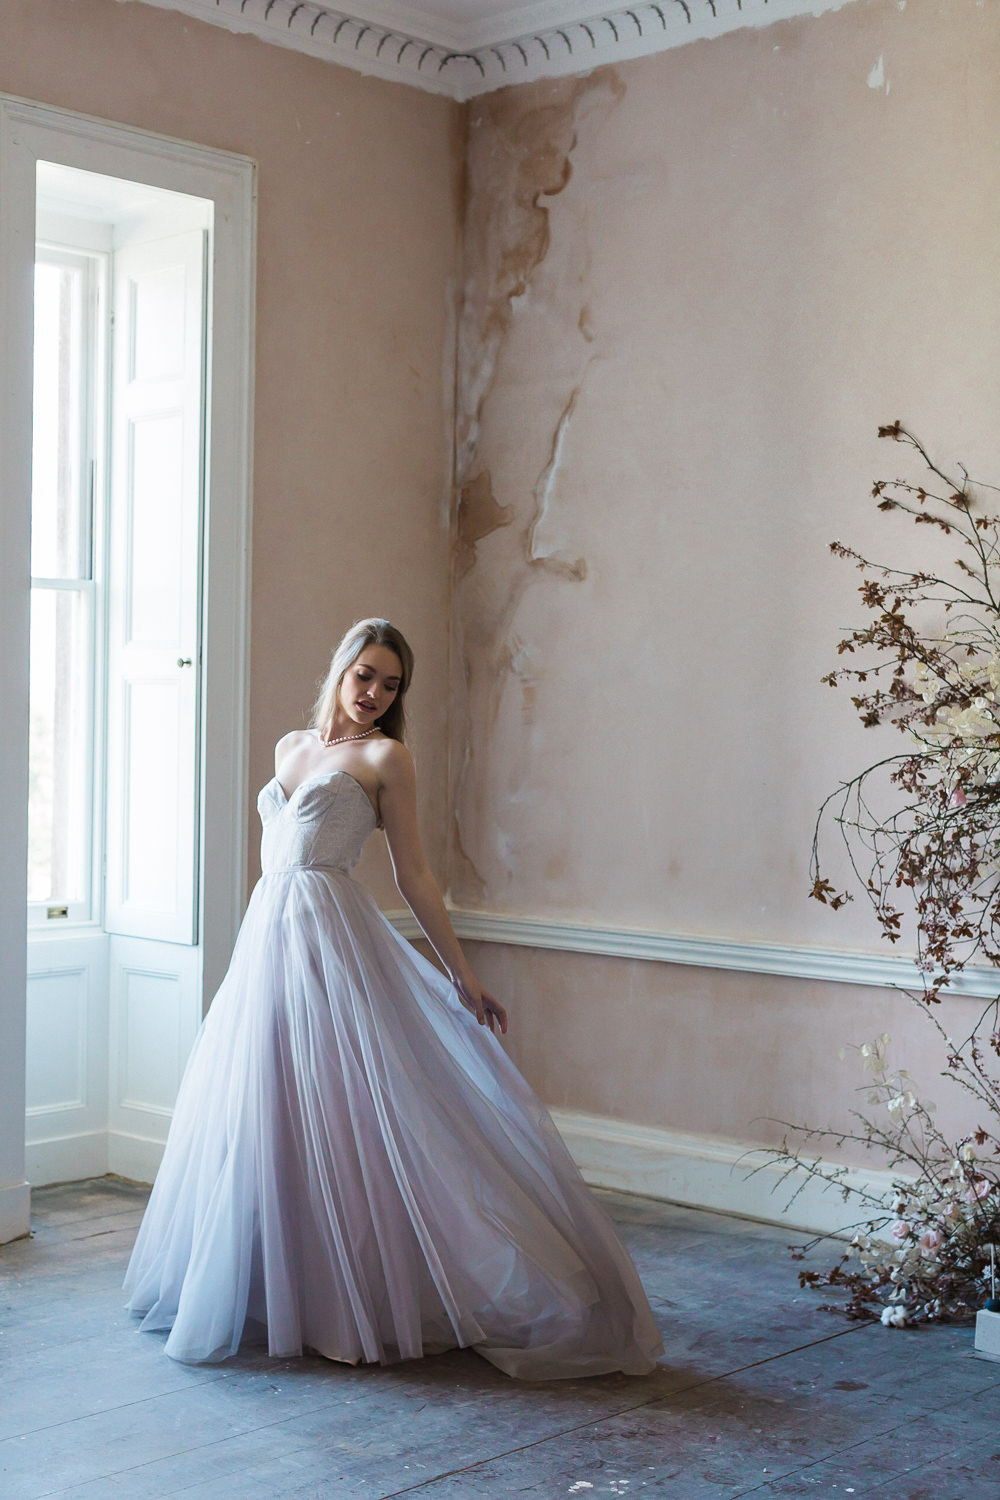 Modern Dance Ballet Inspired Editorial Fine Art Somerley House Dusty Pink Walls Bride Lilac Dress Naomi Neoh Cherry Blossoms Lunaria | Romantic Soft Wedding Ideas Siobhan H Photography